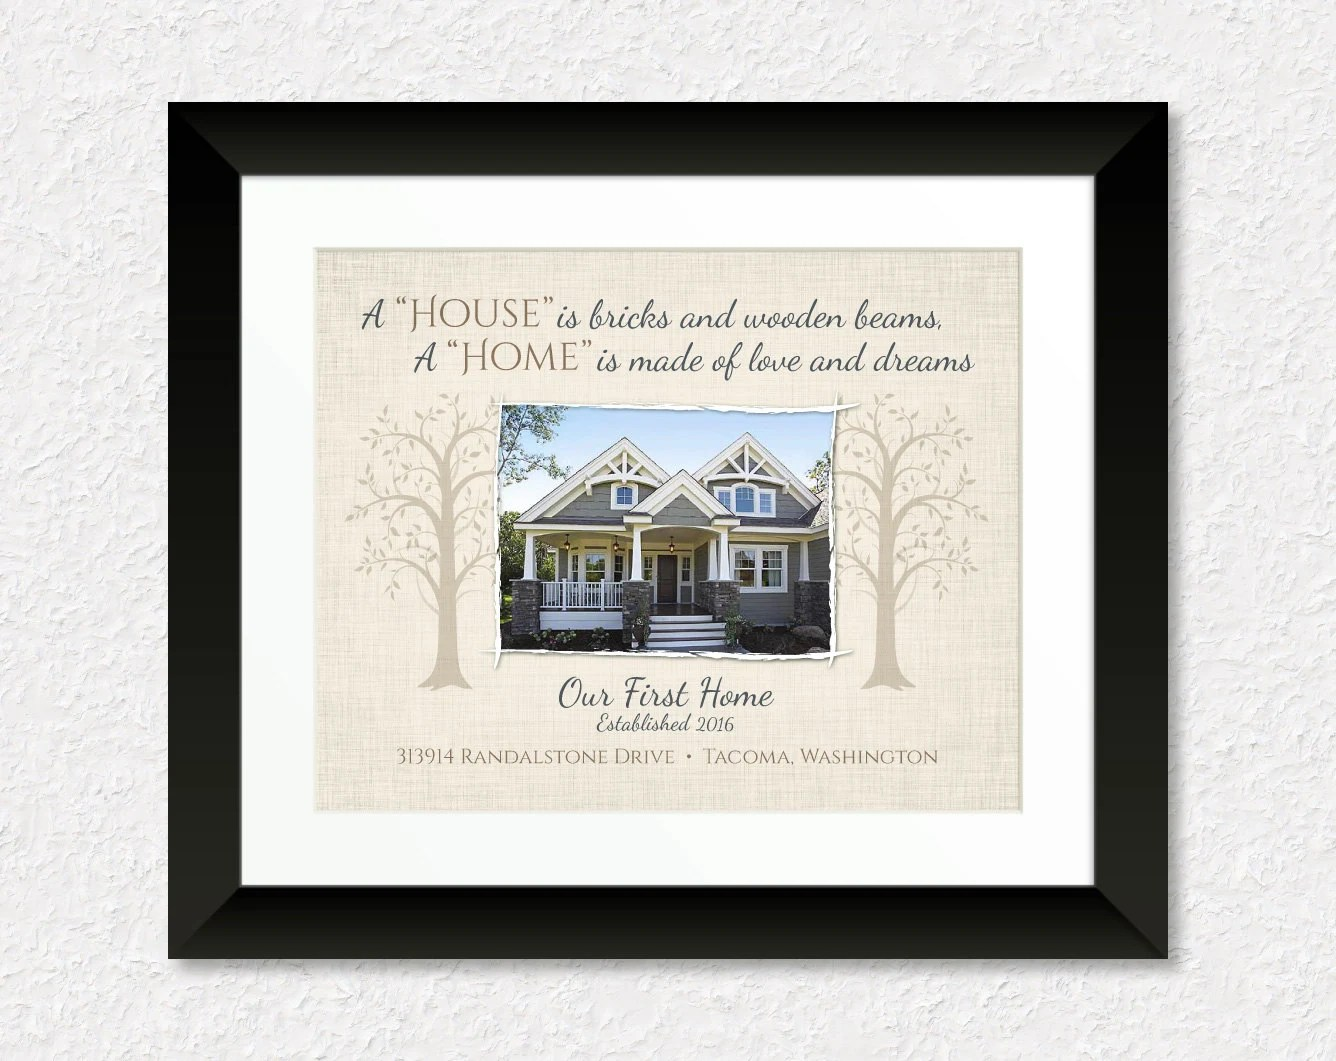 Personalized House Warming Gift Custom Housewarming Gift Personalized New House By